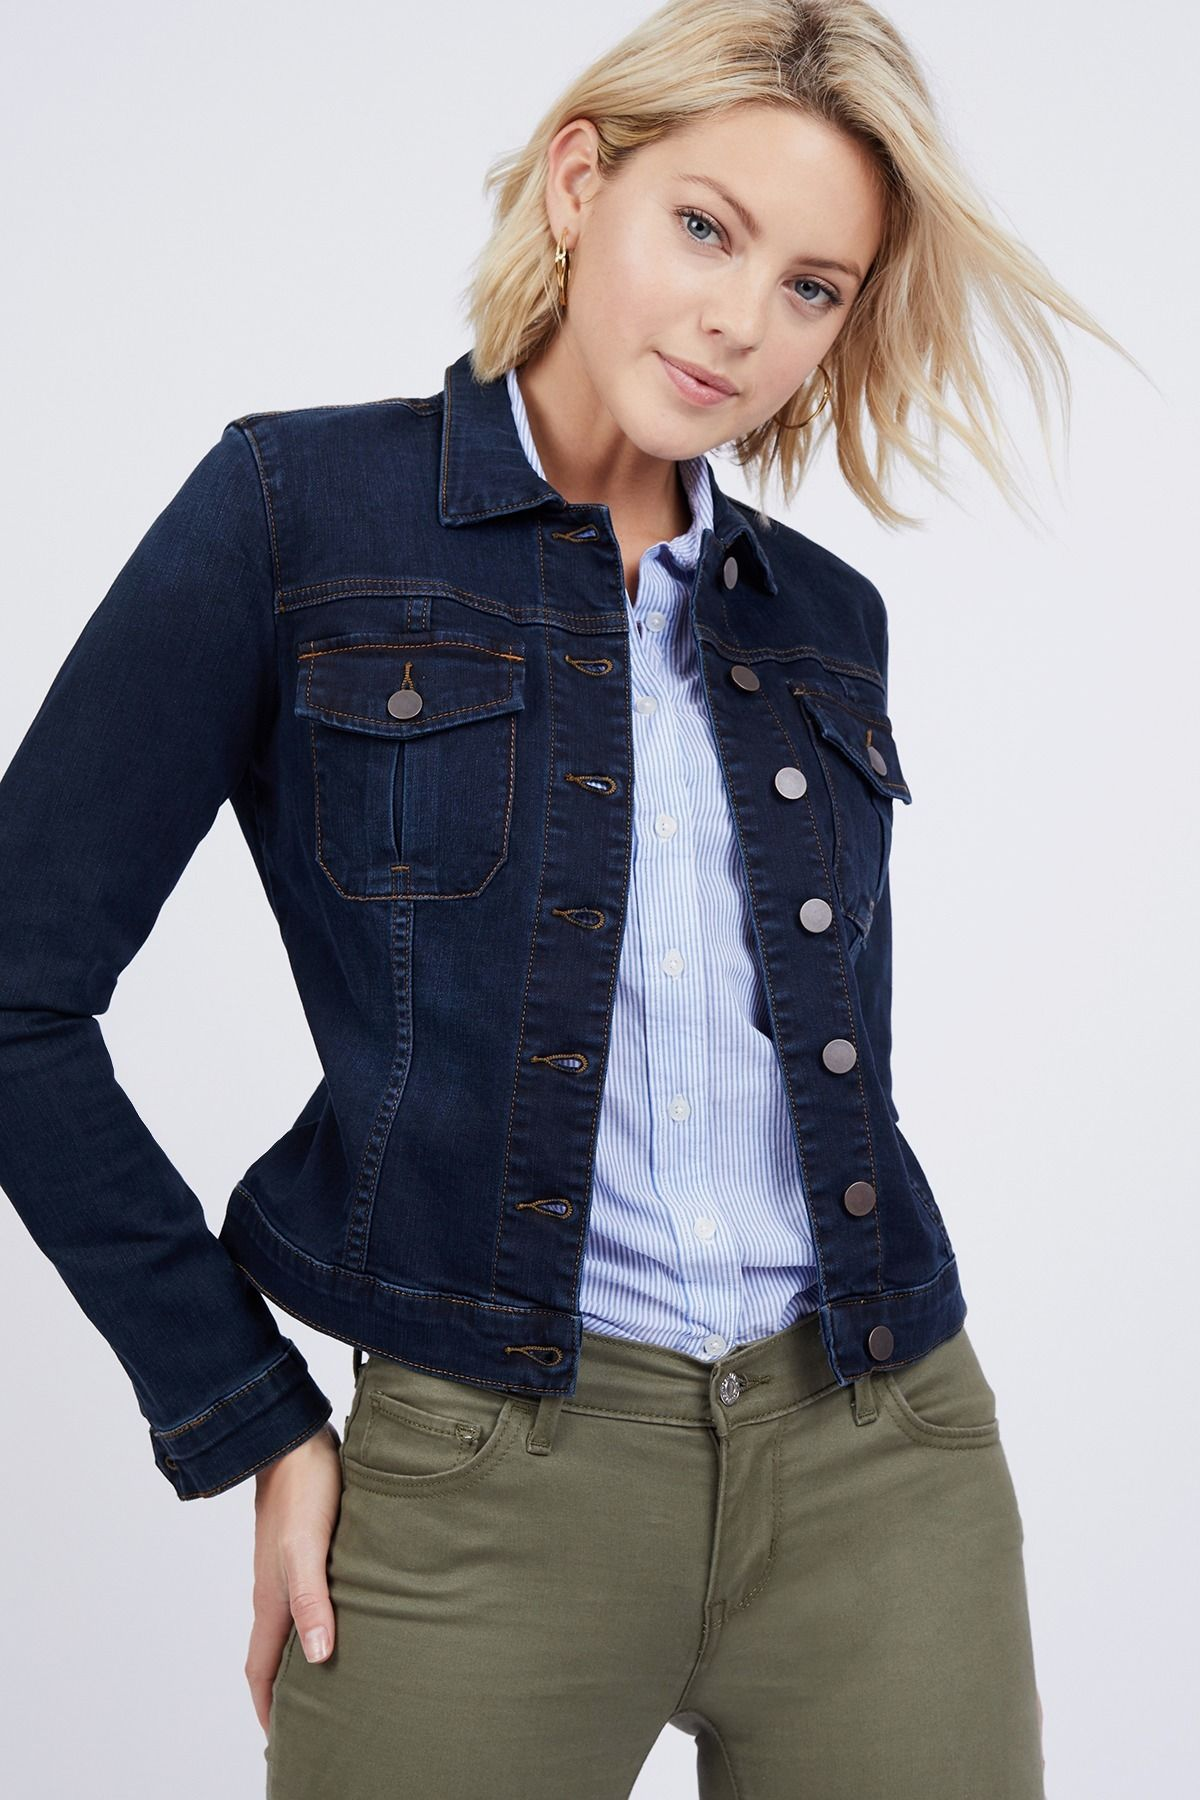 Dark Wash Denim Jacket By Kut From The Kloth Rent Clothes With Le Tote Jacket Outfit Women Dark Denim Jacket Outfit Dark Wash Denim Jacket [ 1800 x 1200 Pixel ]